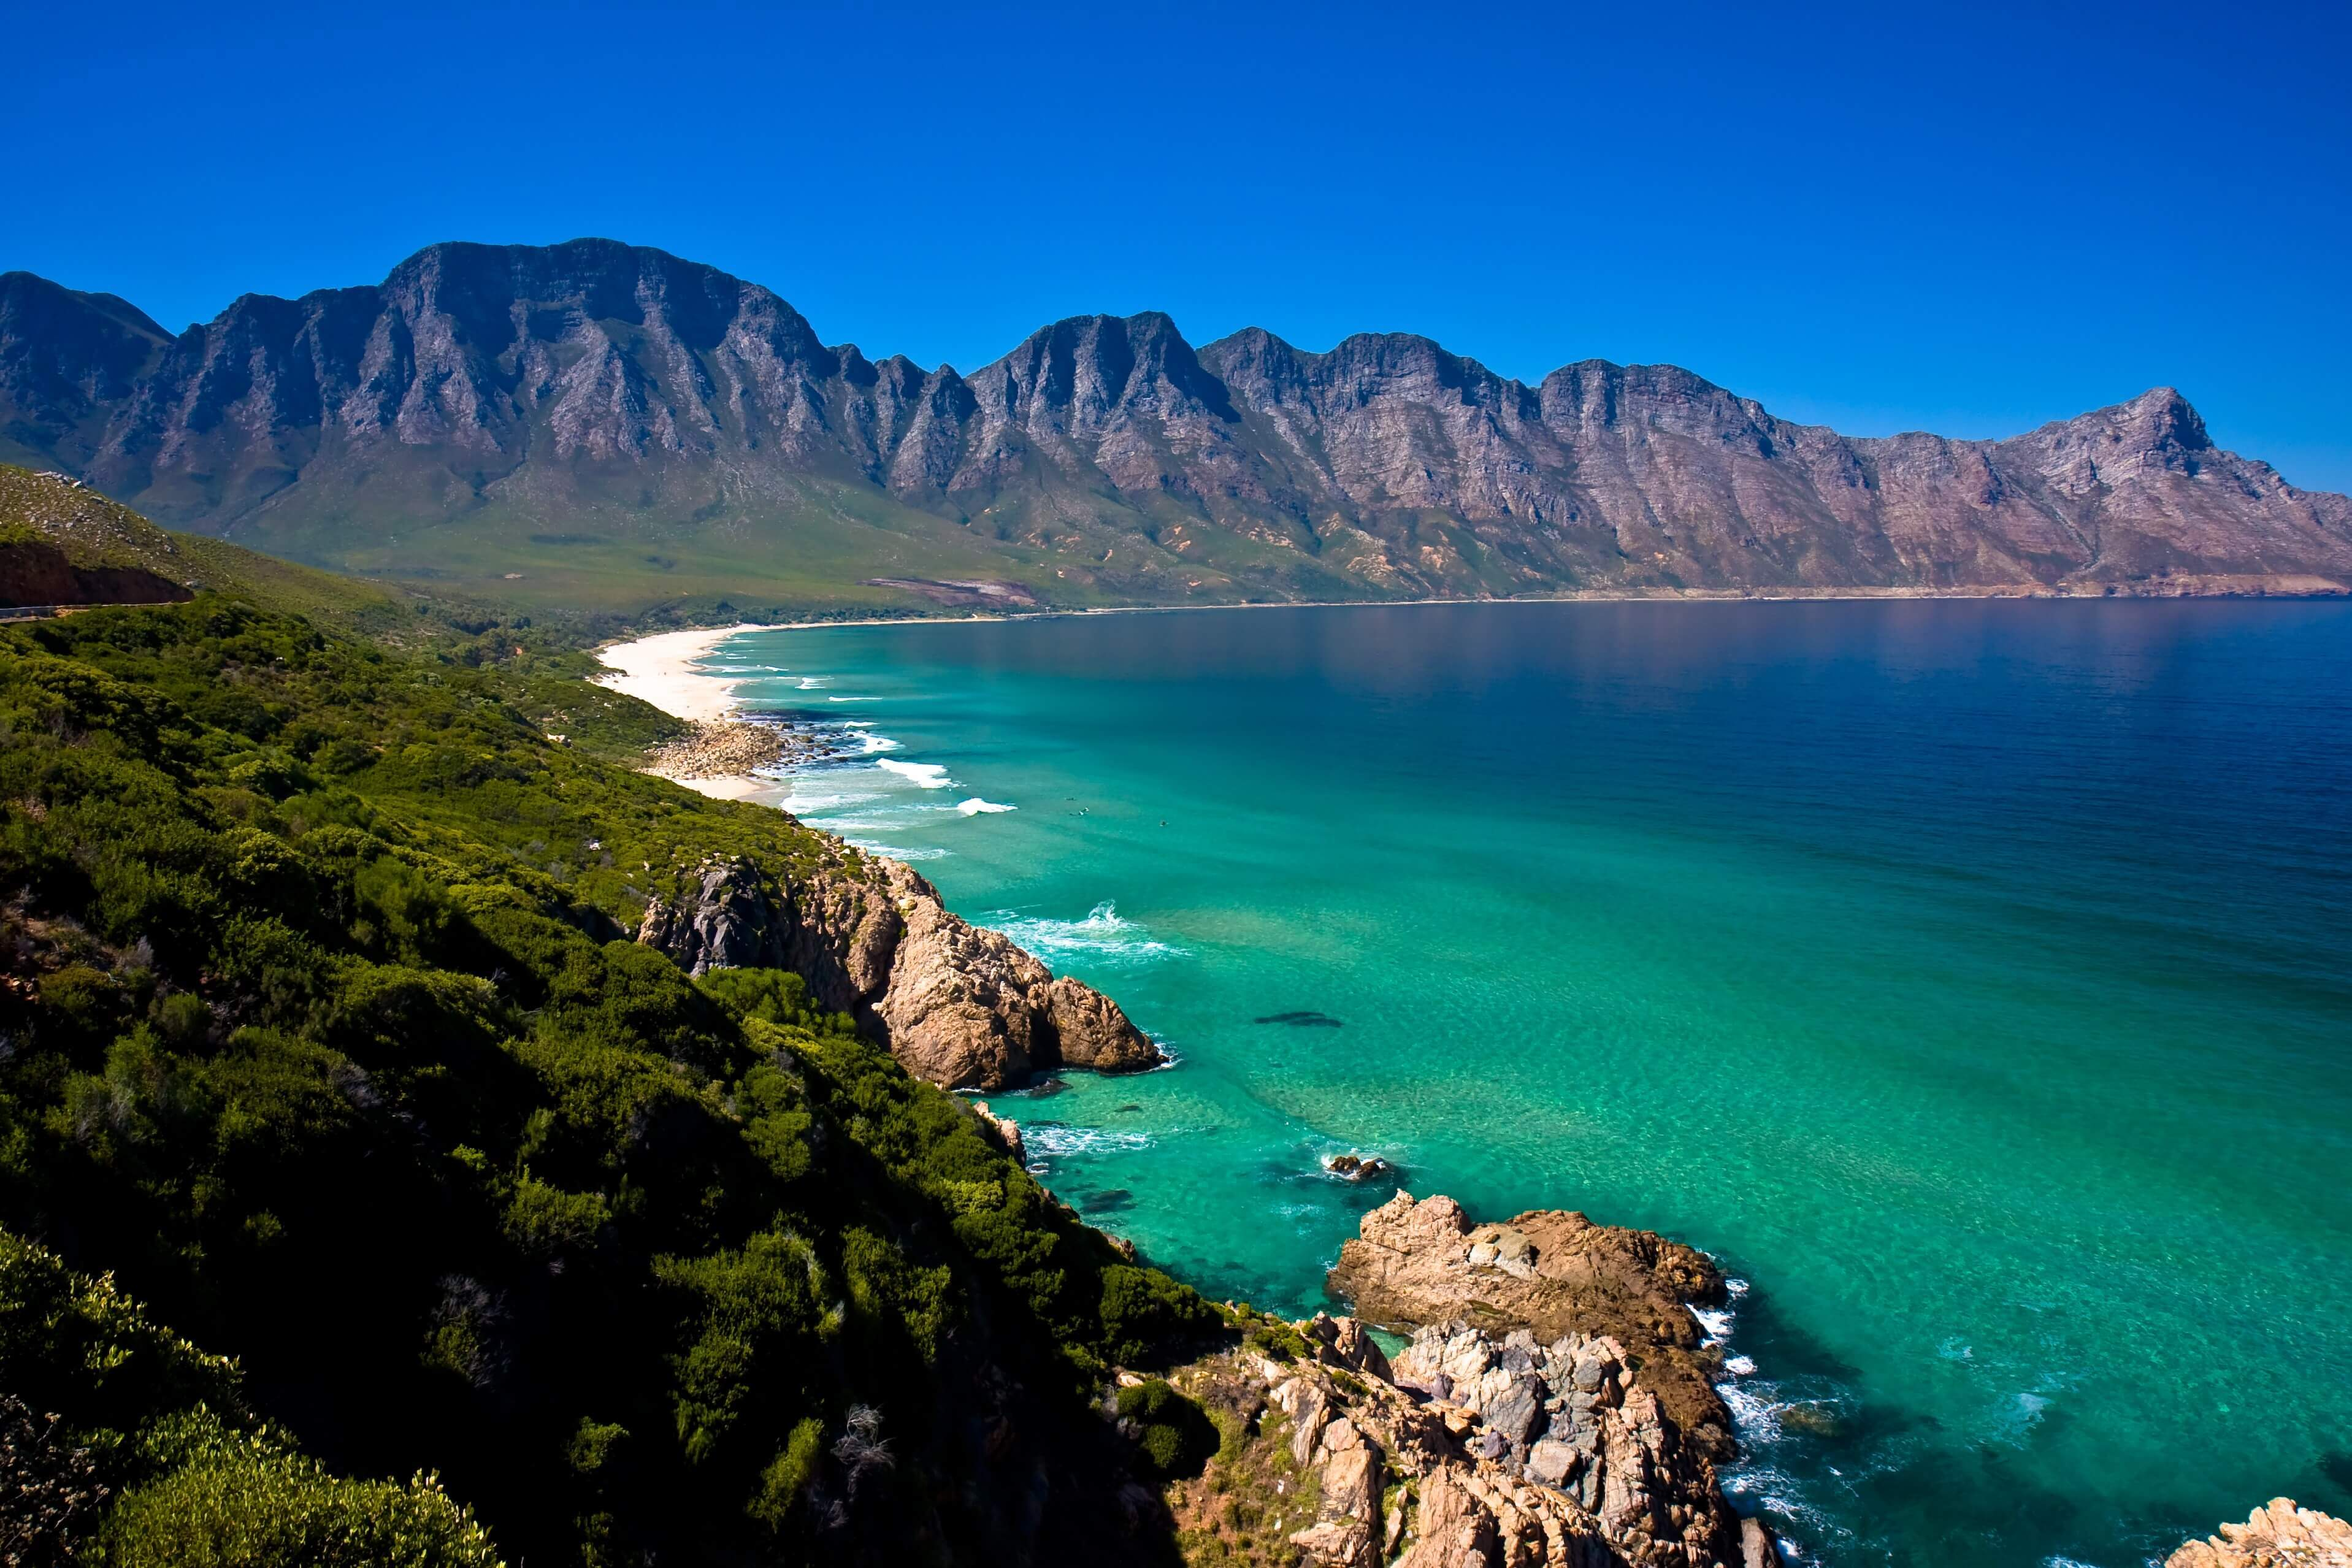 Cape Town Background image